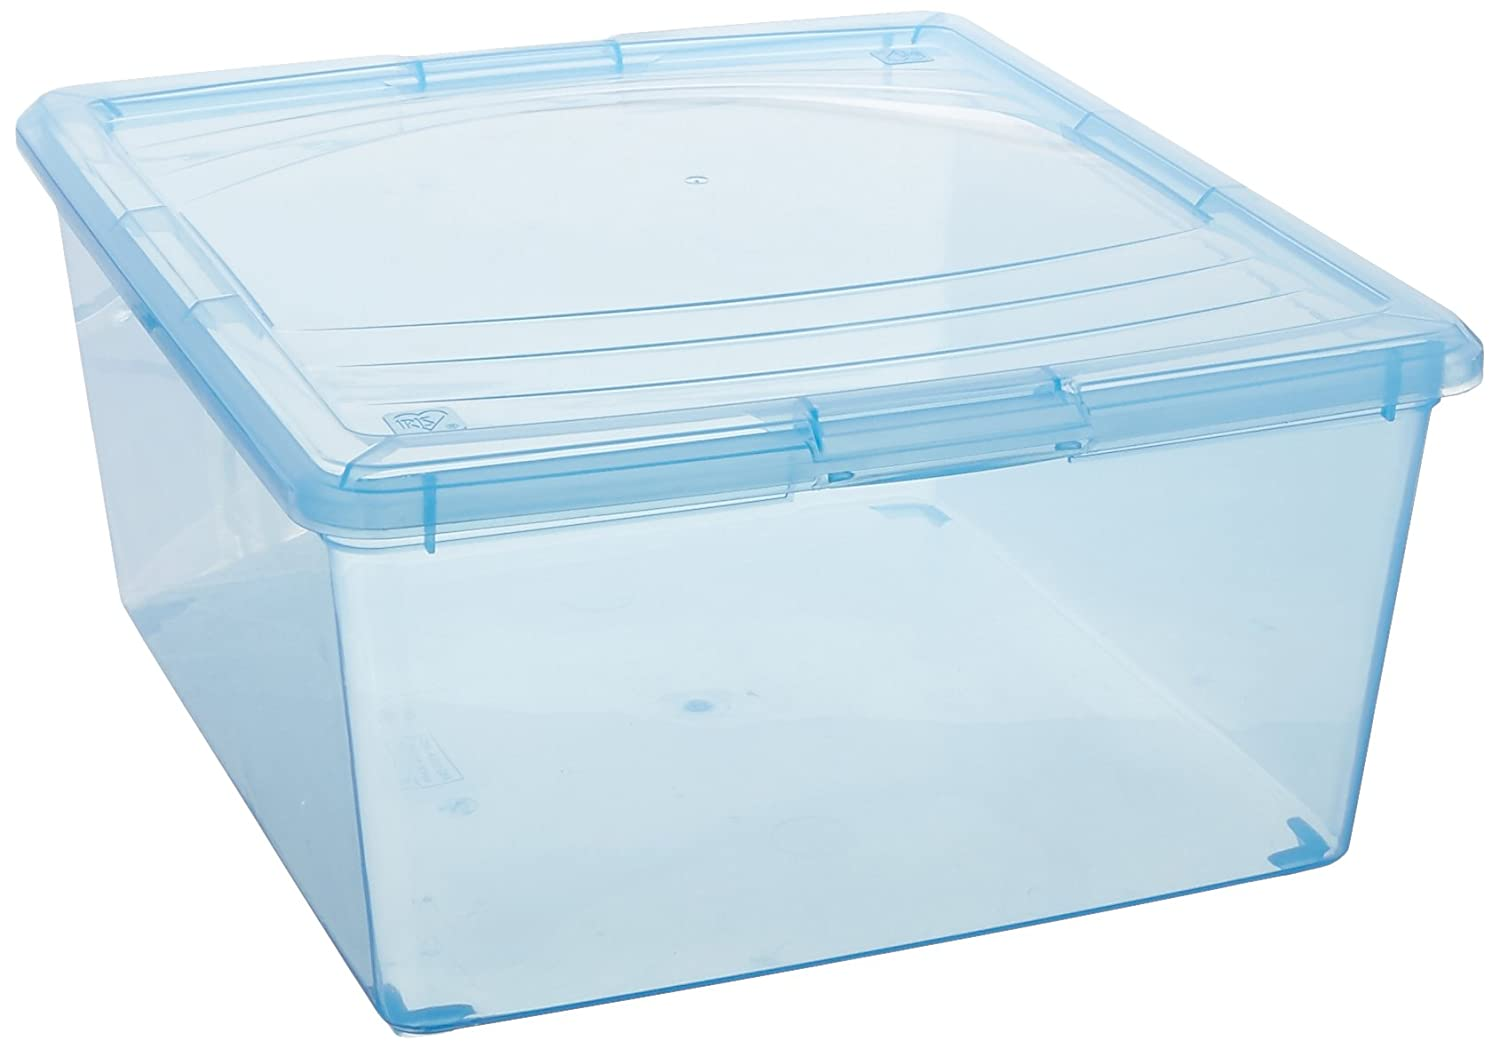 IRIS 101901 6 Quart Modular Storage Box, Clear IRIS USA Inc.